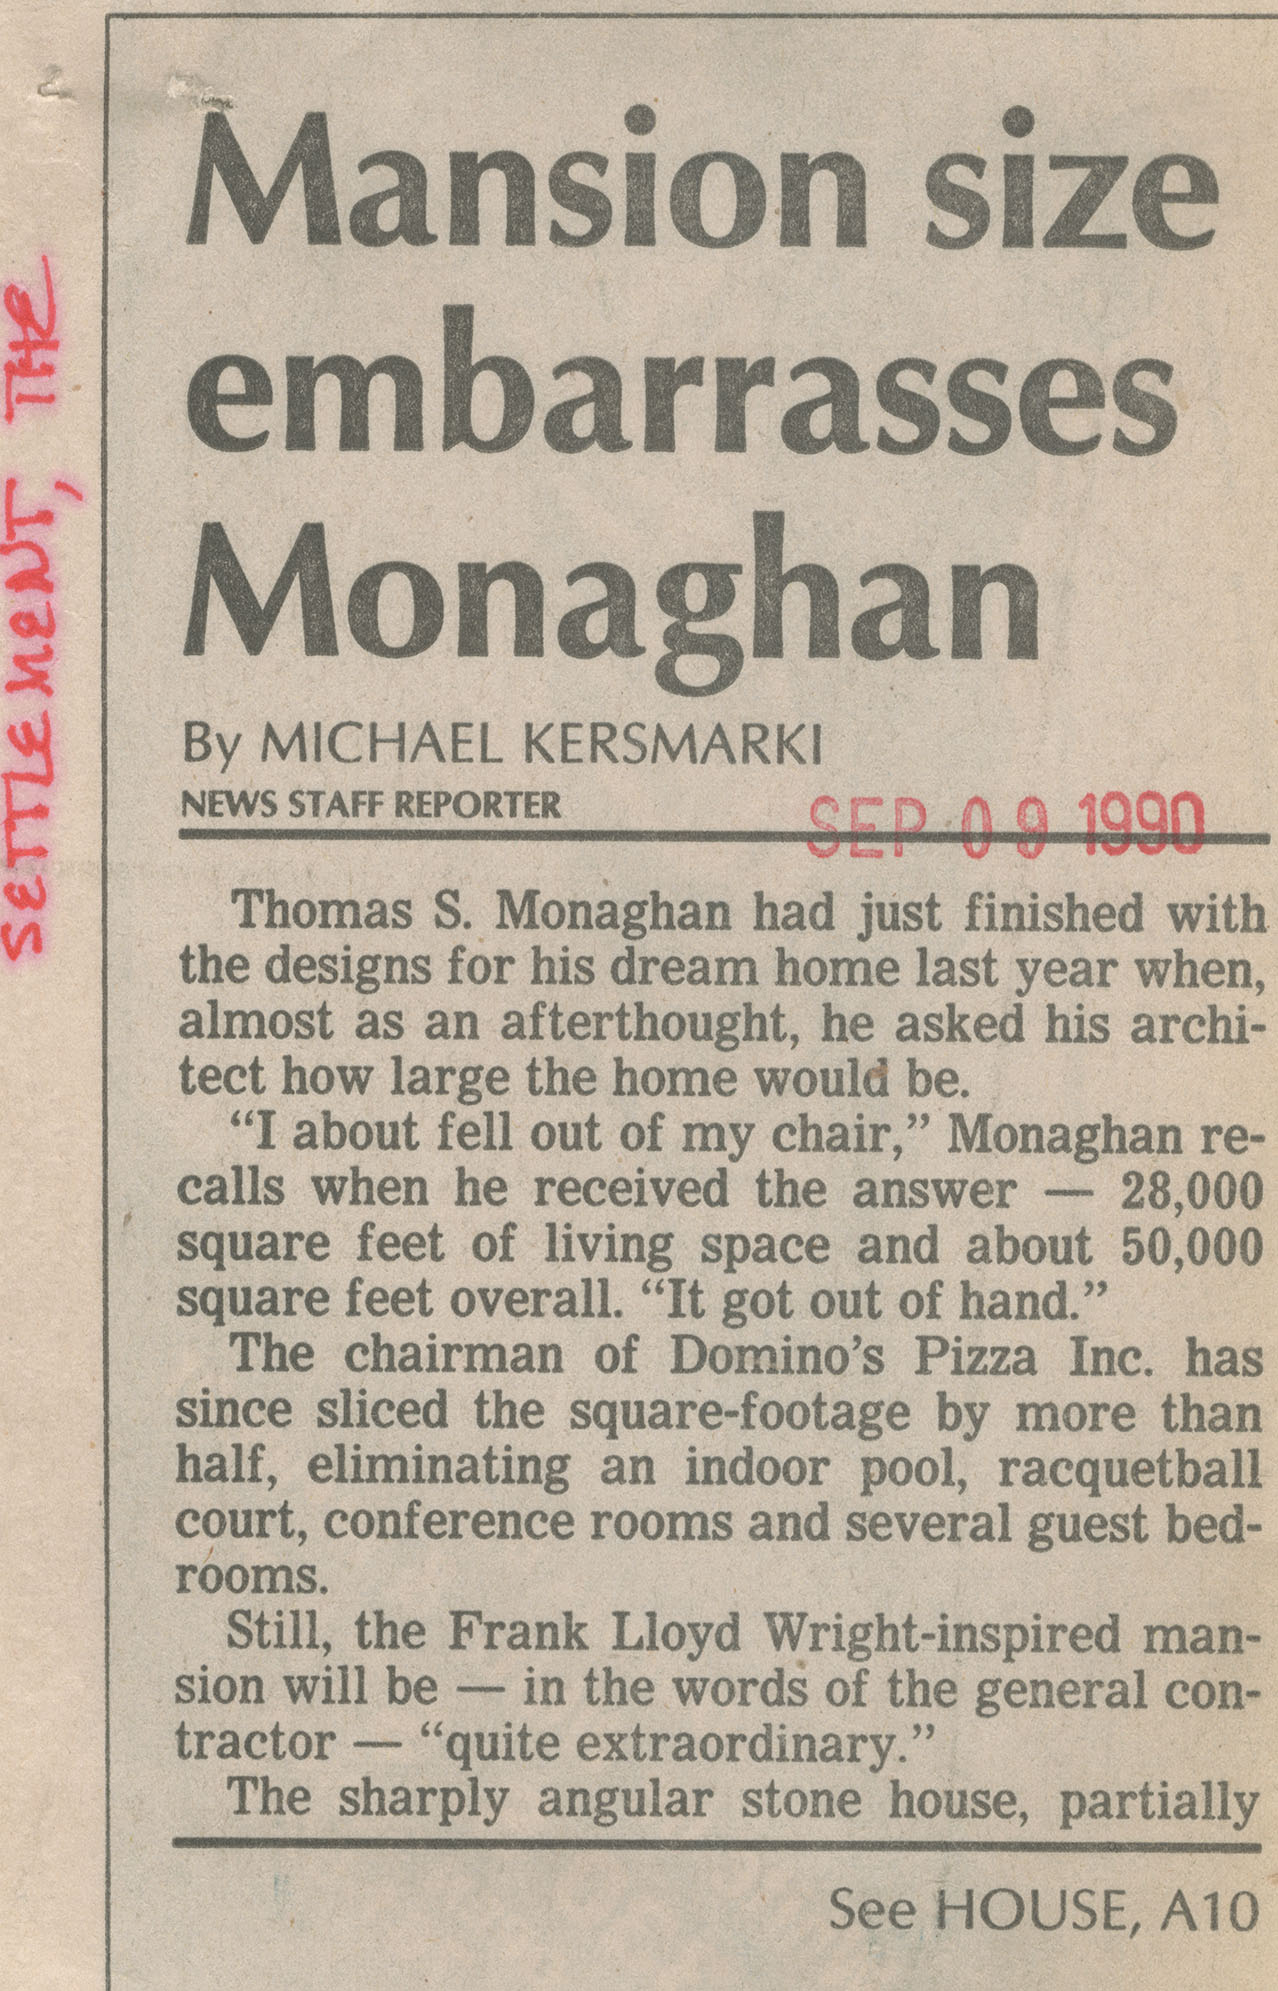 Mansion size embarrasses Monaghan image